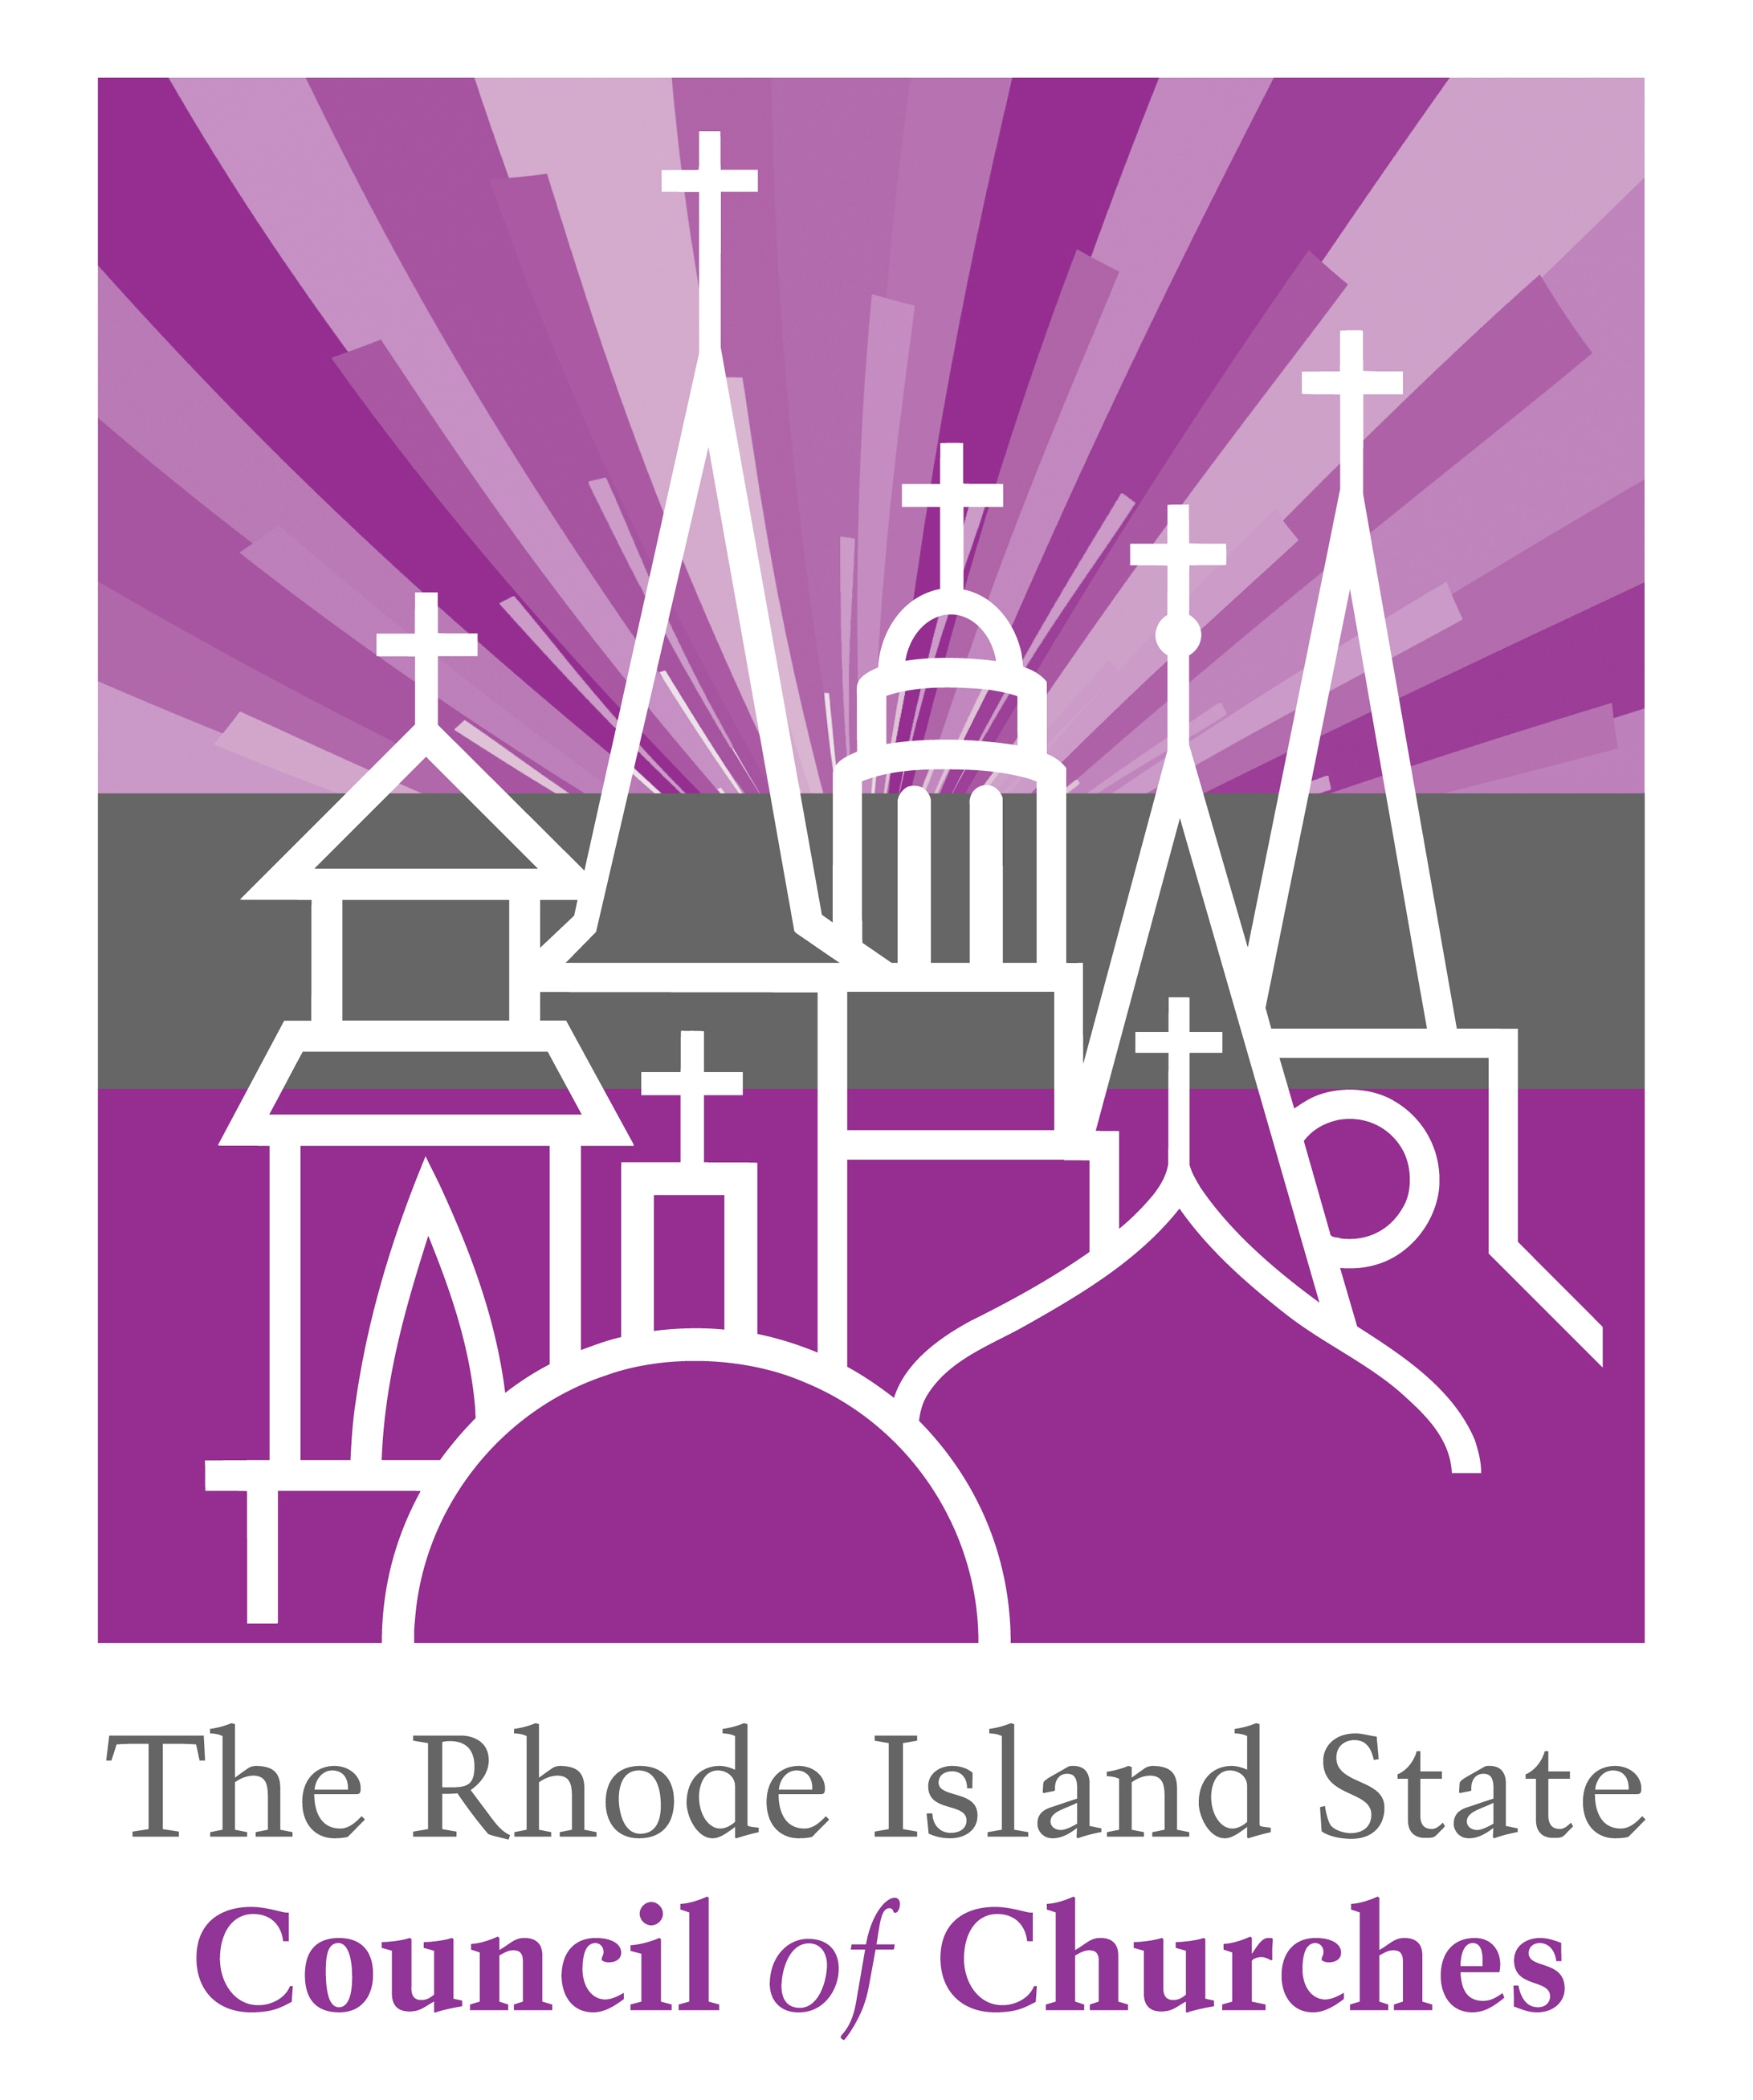 The Rhode Island Council of Churches